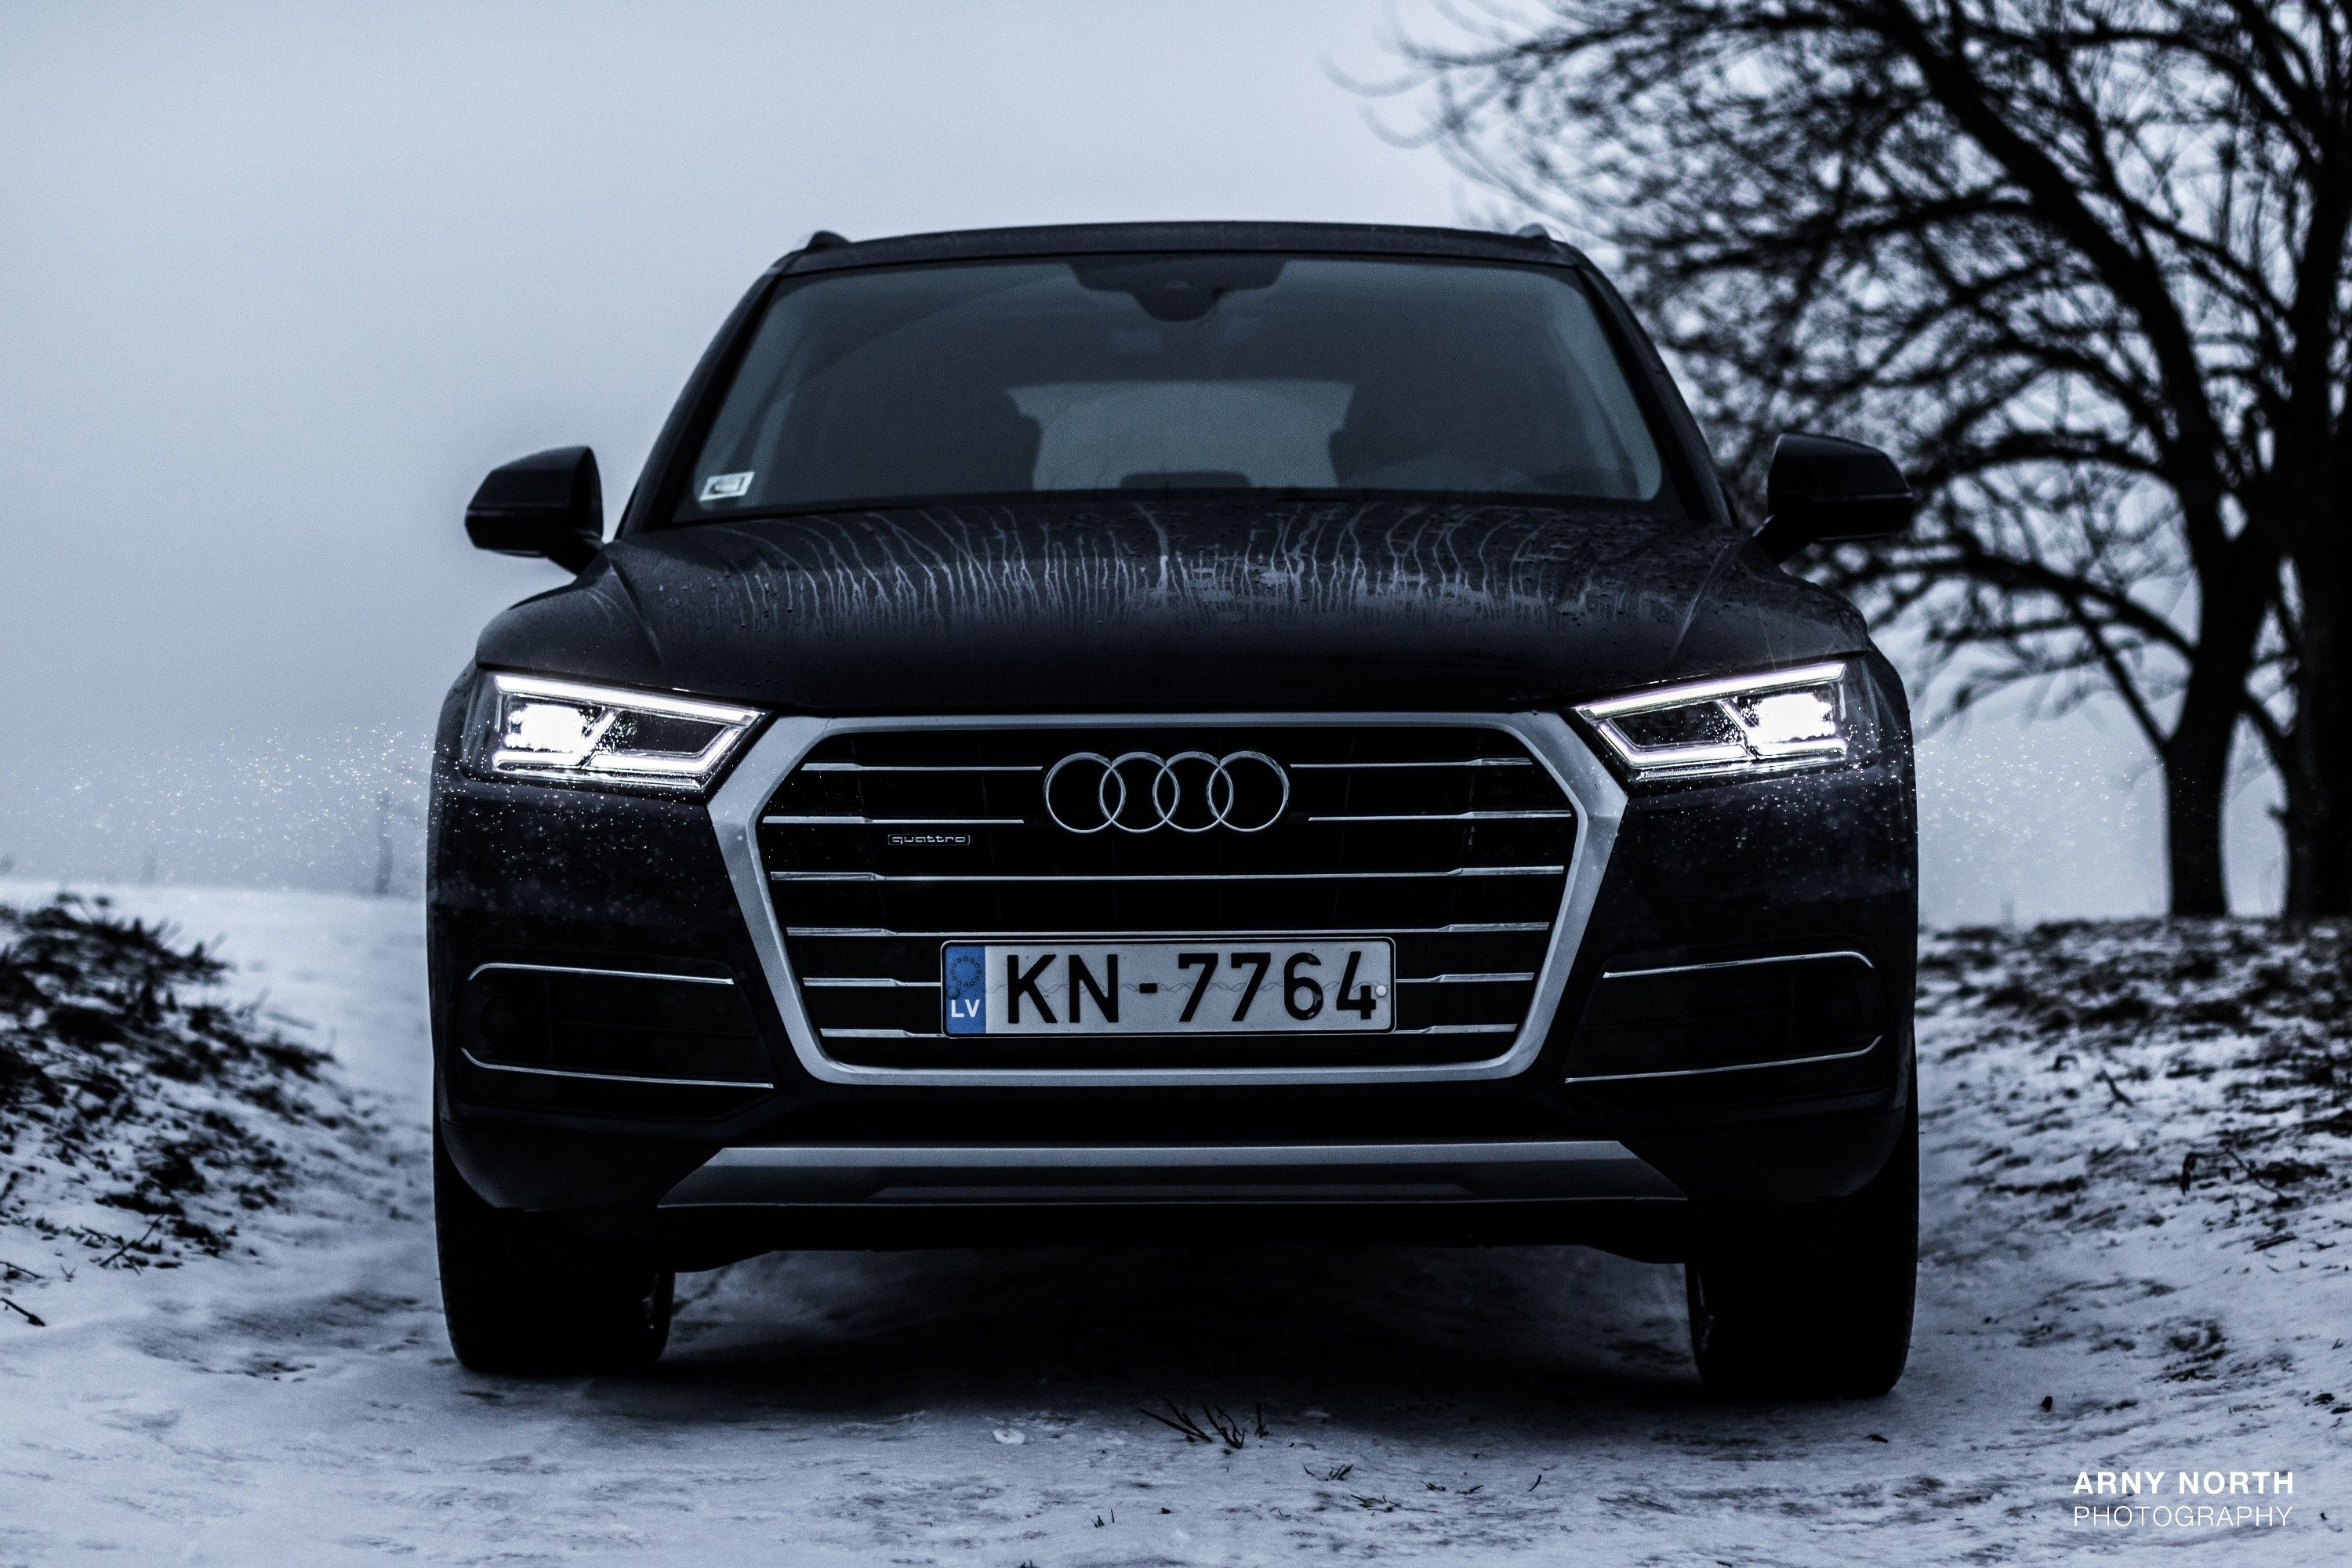 audi q5 audi quattro snow latvia arny north wallpapers and backgrounds